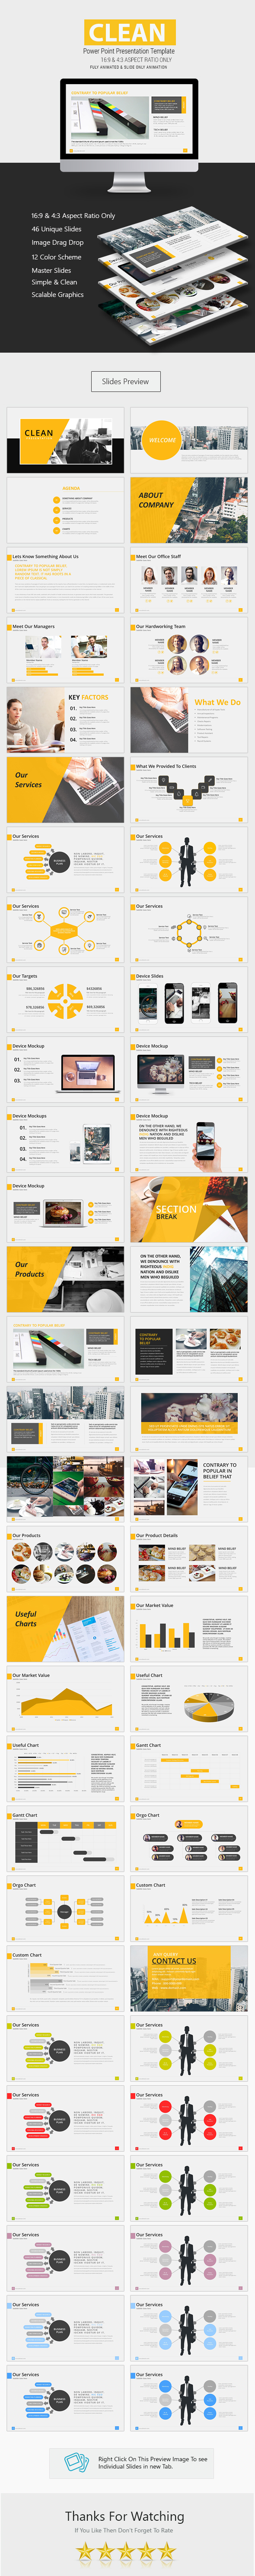 GraphicRiver Clean Premium Power Point Presentation 20975576